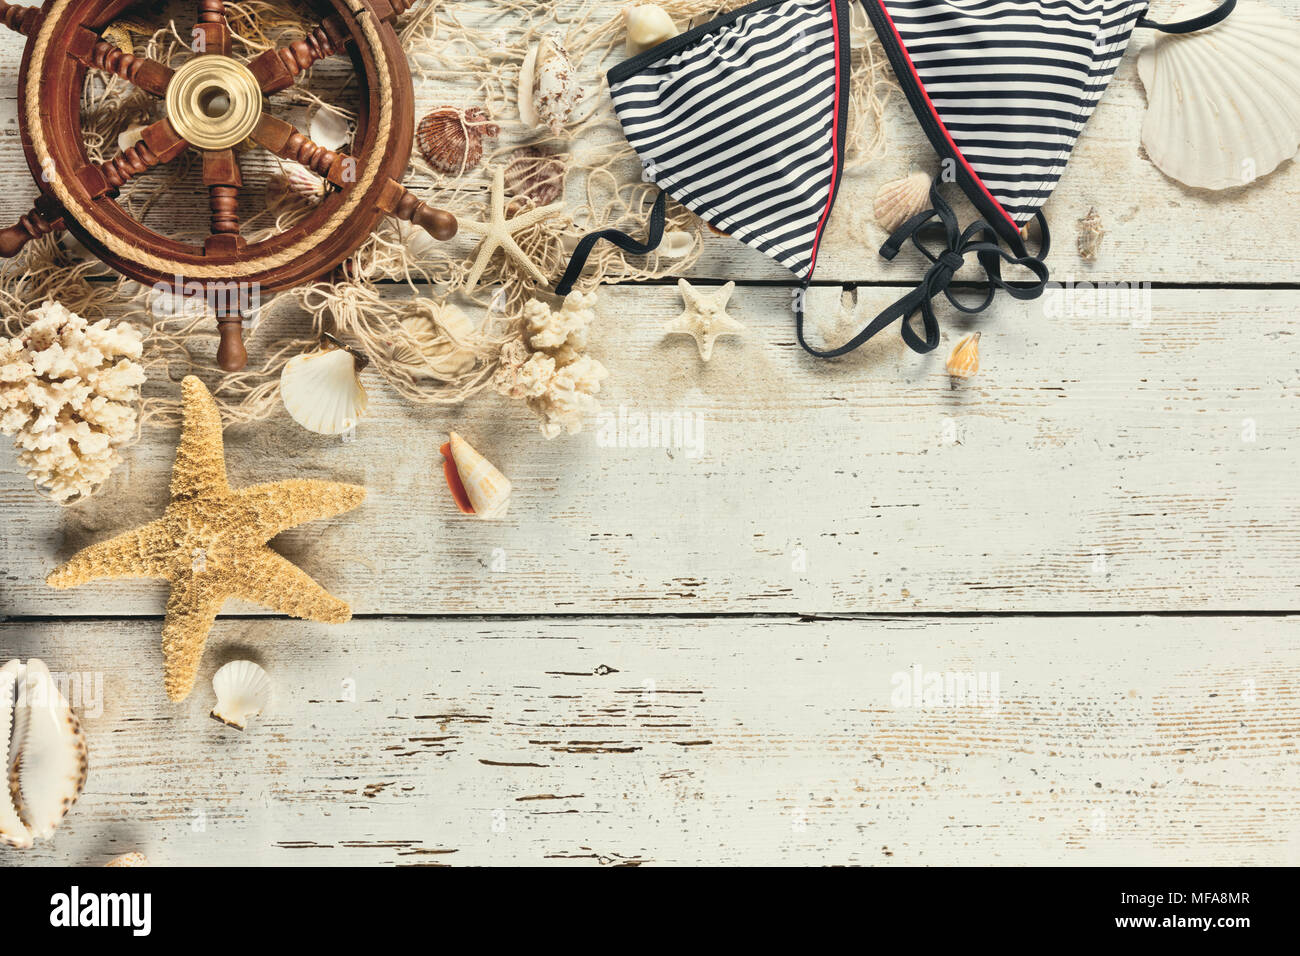 Seashells, swimming suit and wooden rudder with fishing net placed on old wooden planks in vintage colors. Copyspace for text. Very high resolution im - Stock Image